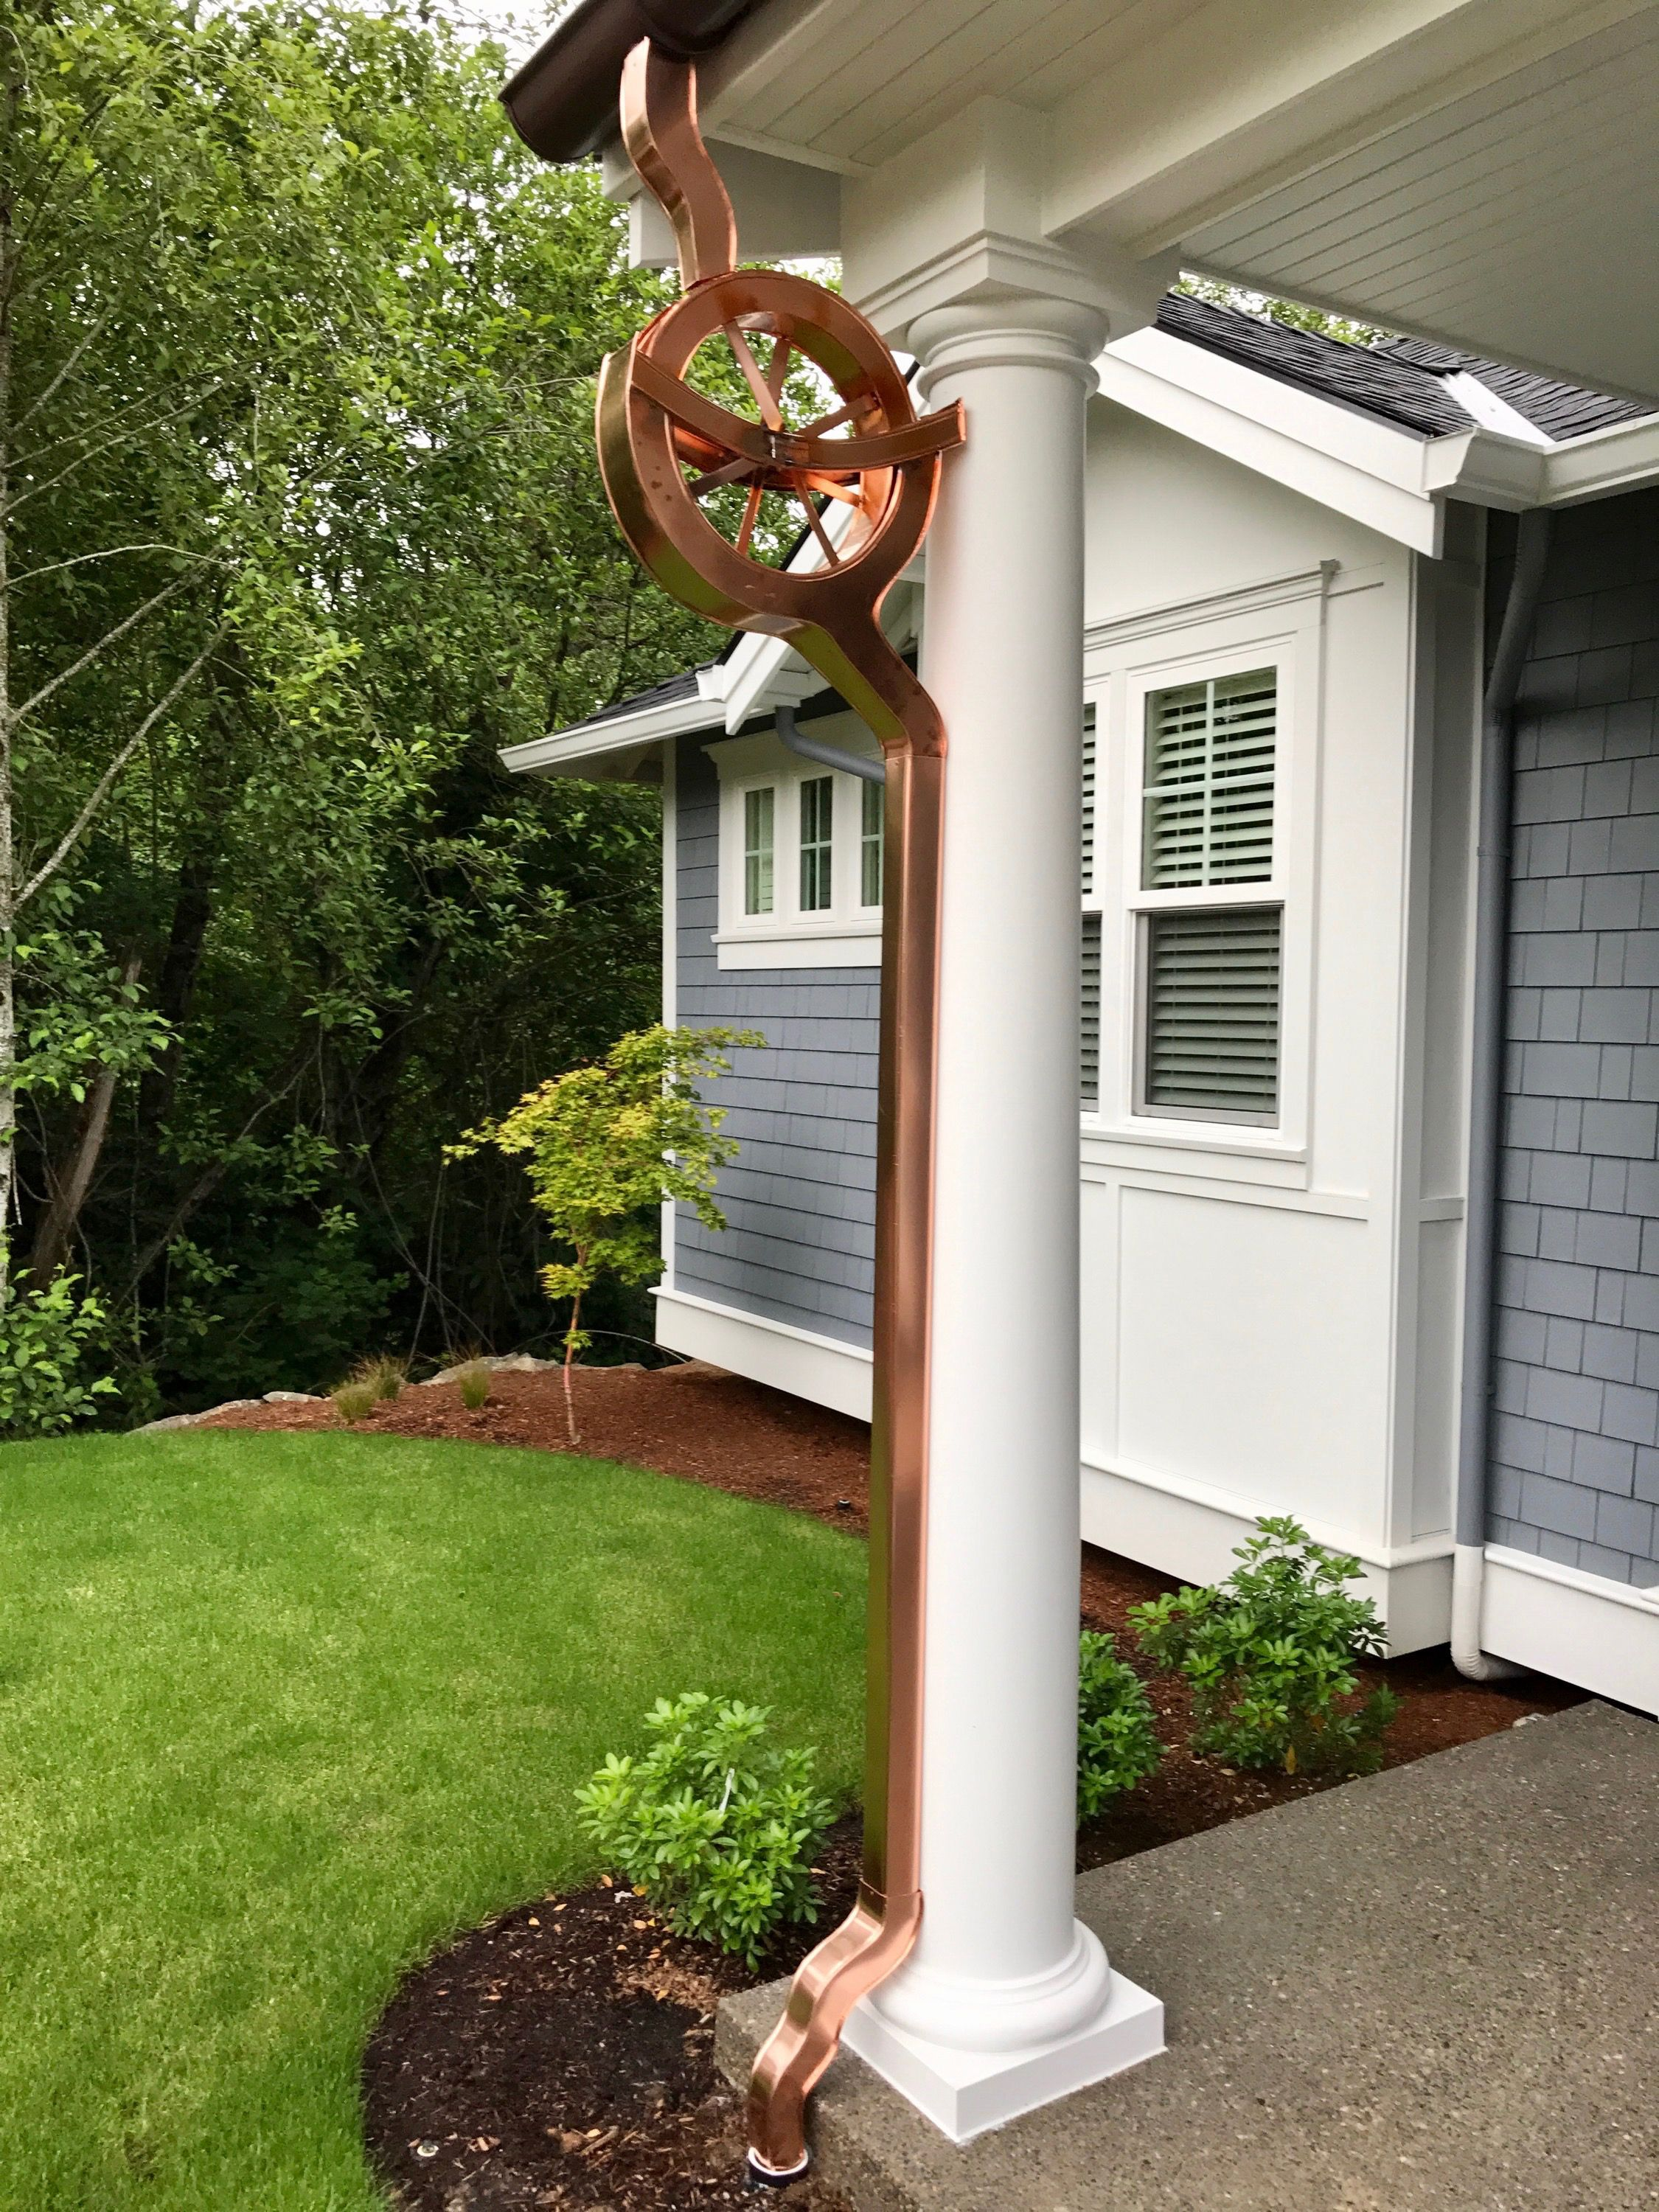 Embracing Natures Energy Into Form Of Art House Designs Exterior